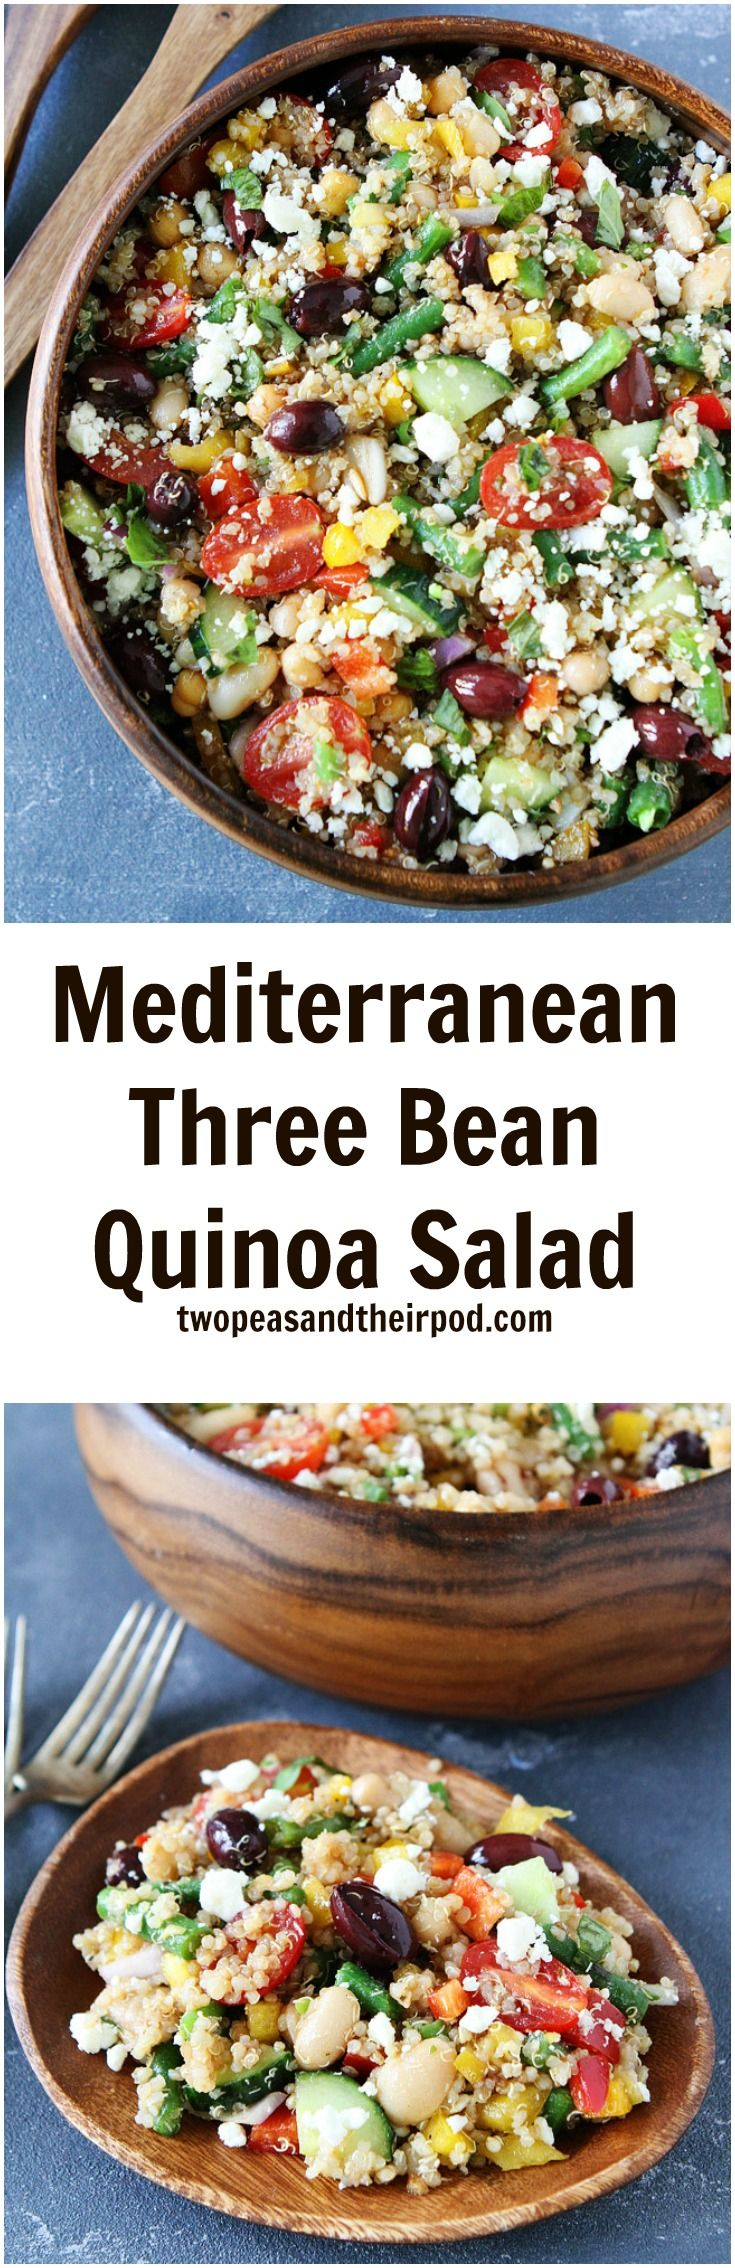 Mediterranean Three Bean Quinoa Salad Recipe on twopeasandtheirpod.com This healthy salad makes a great side dish or main dish. It is perfect for parties and potlucks!